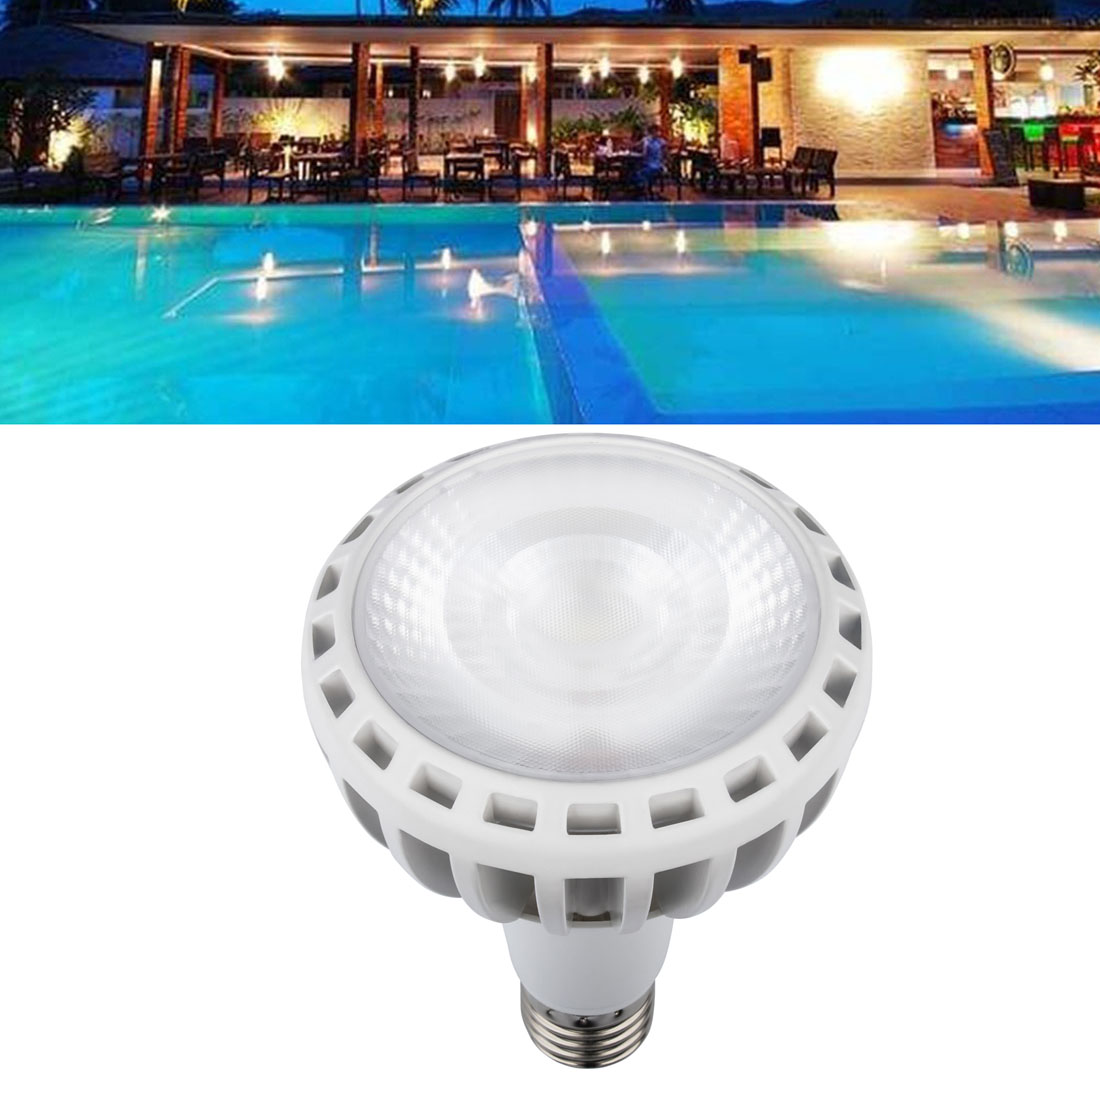 Details about COB Technology 120V Underwater Swimming Pool LED Light Bulb  For Pentair Hayward